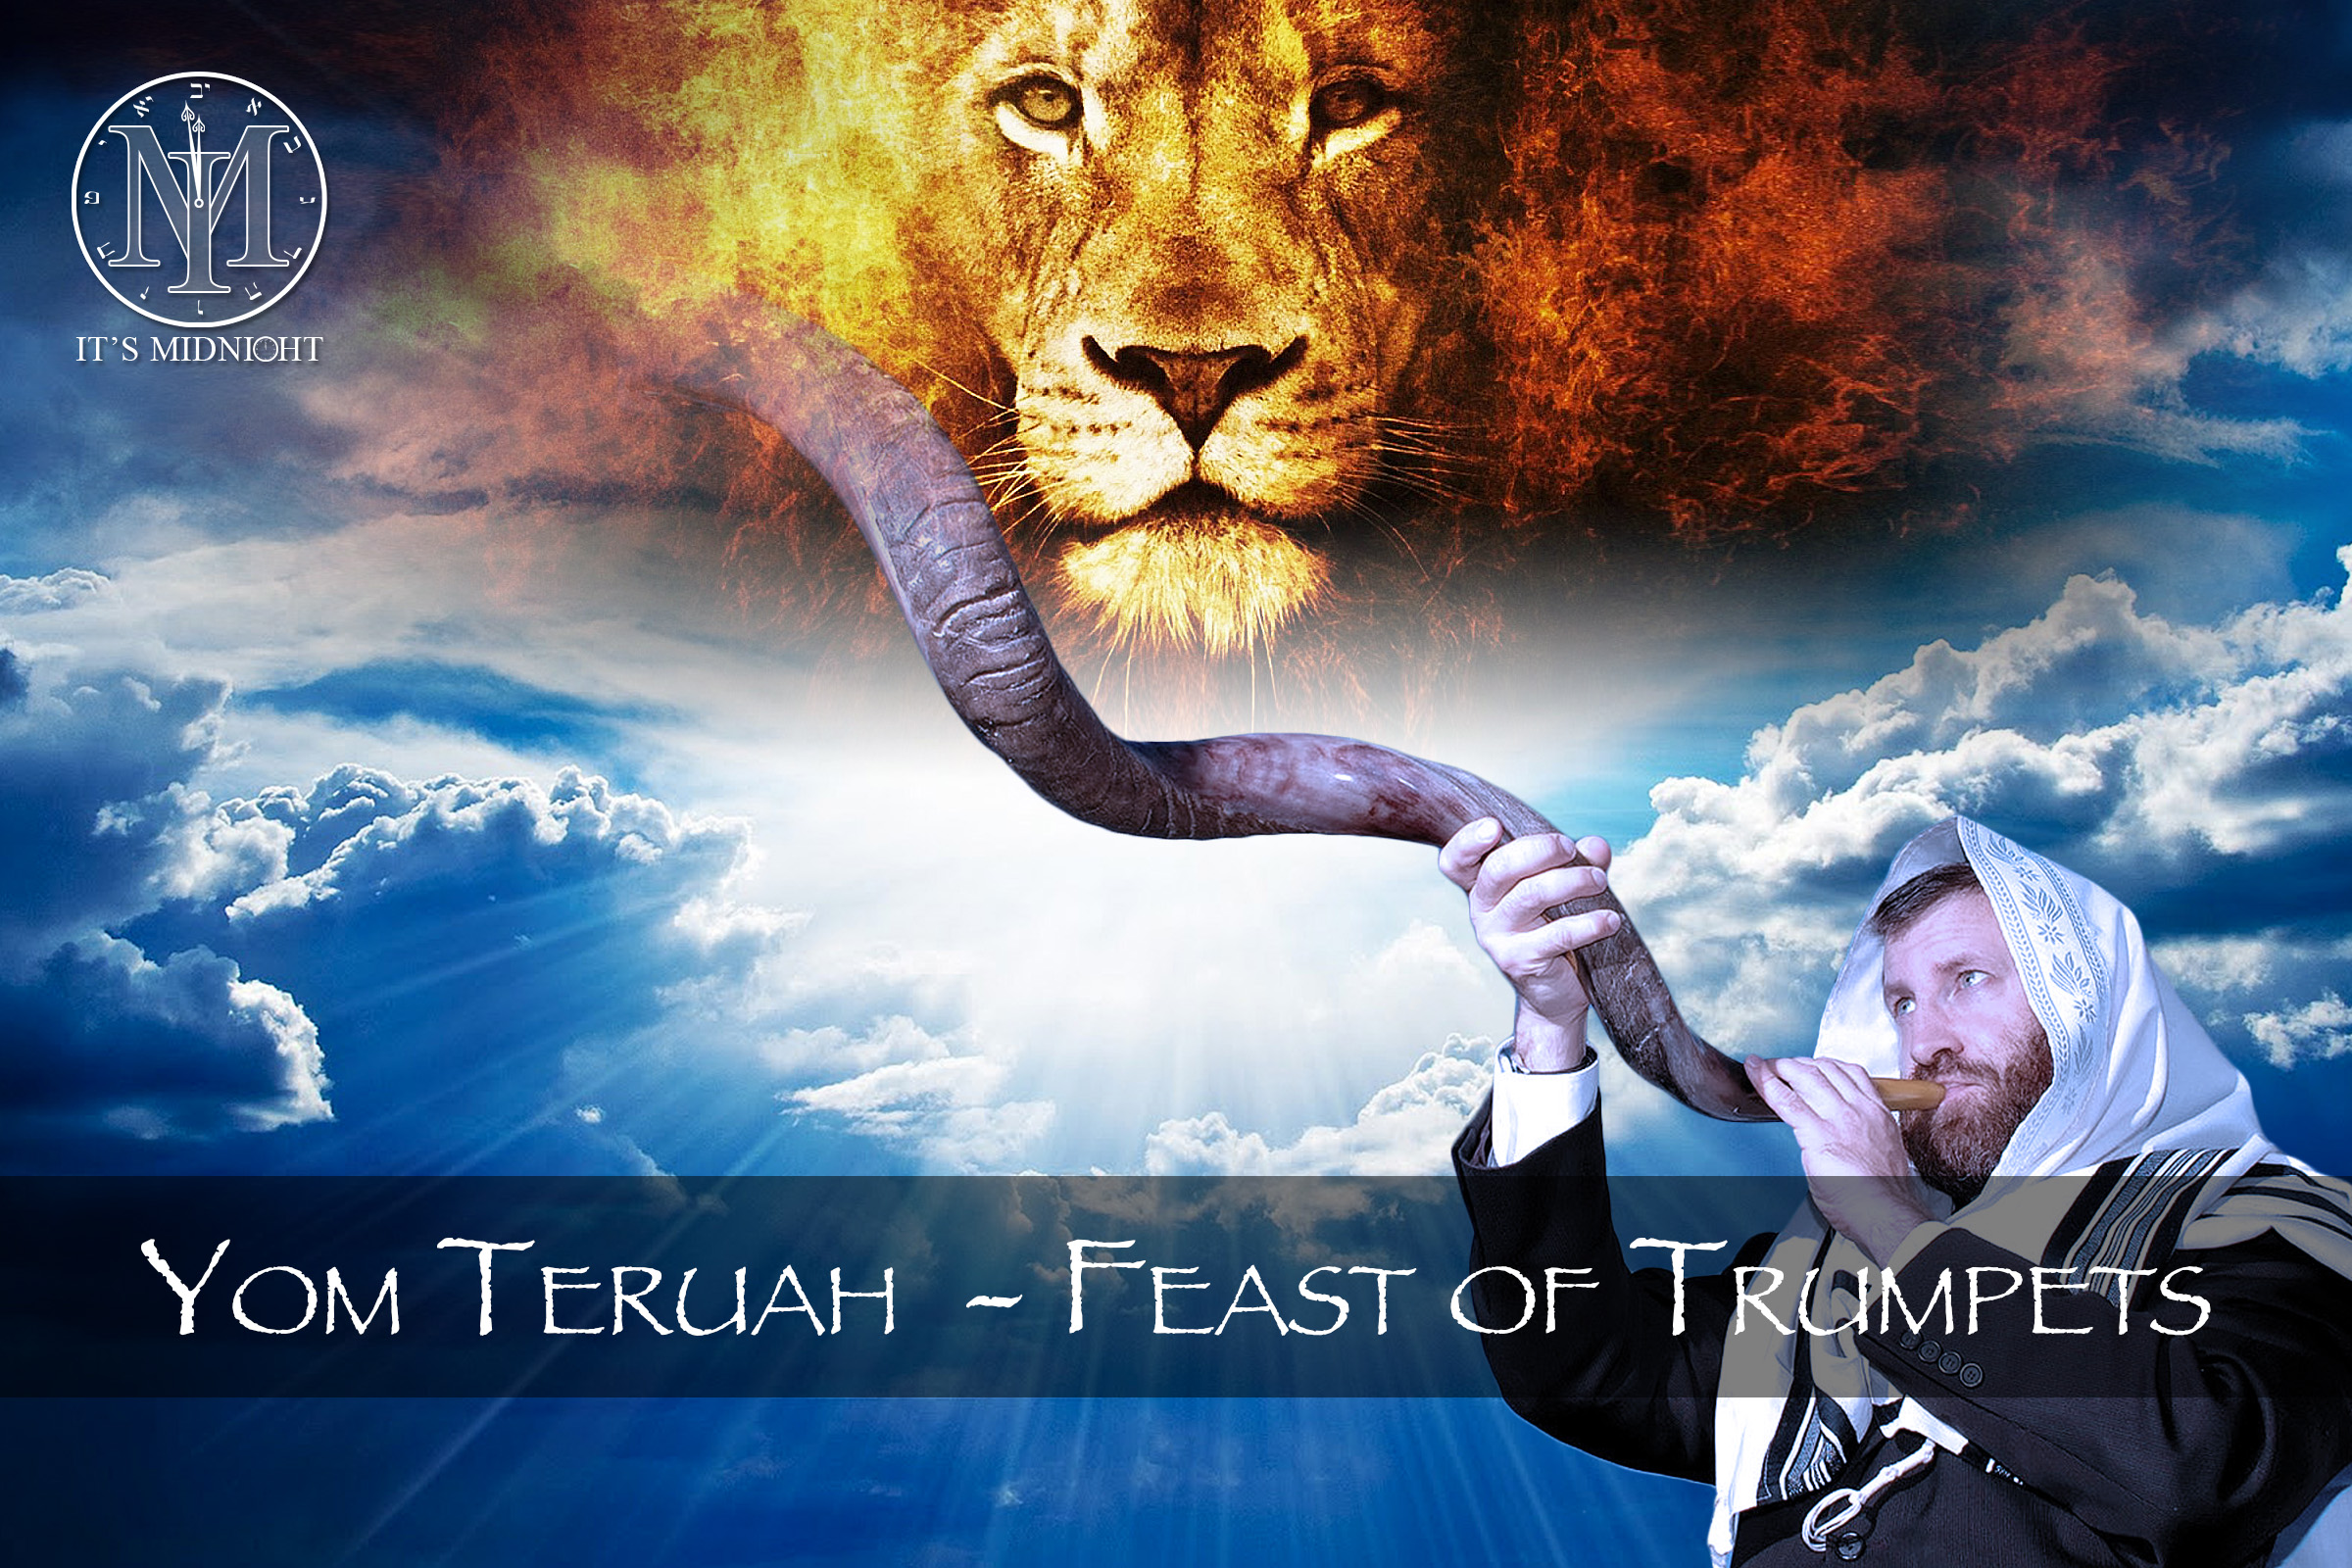 Yom Teruah - The Feast of Trumpets.jpg